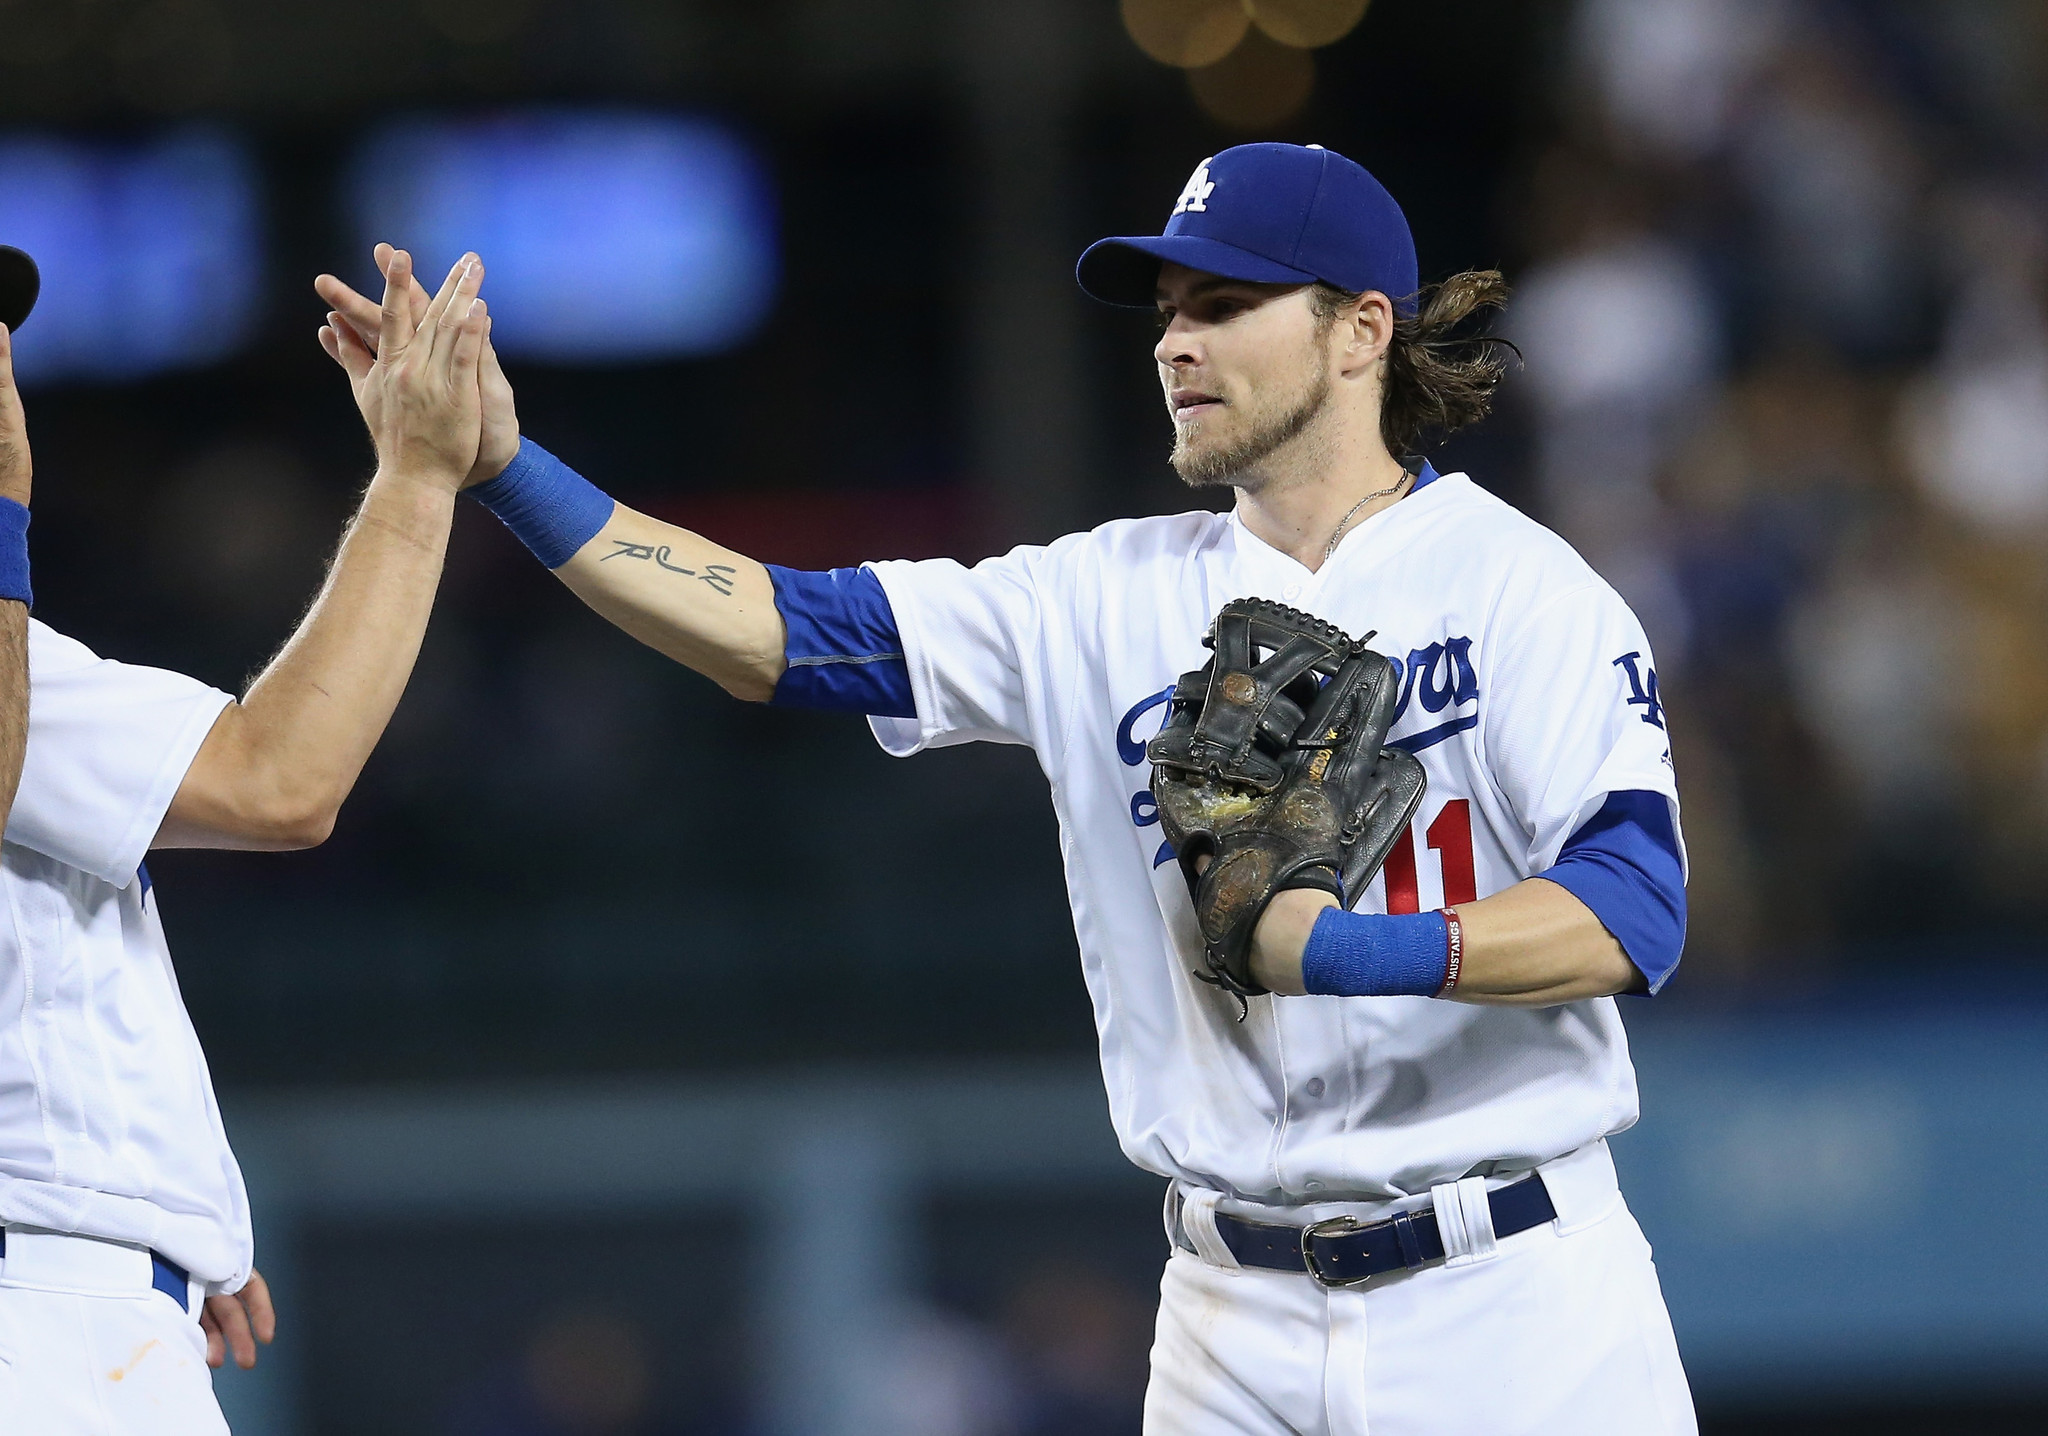 La-sp-dodgers-report-20160929-snap